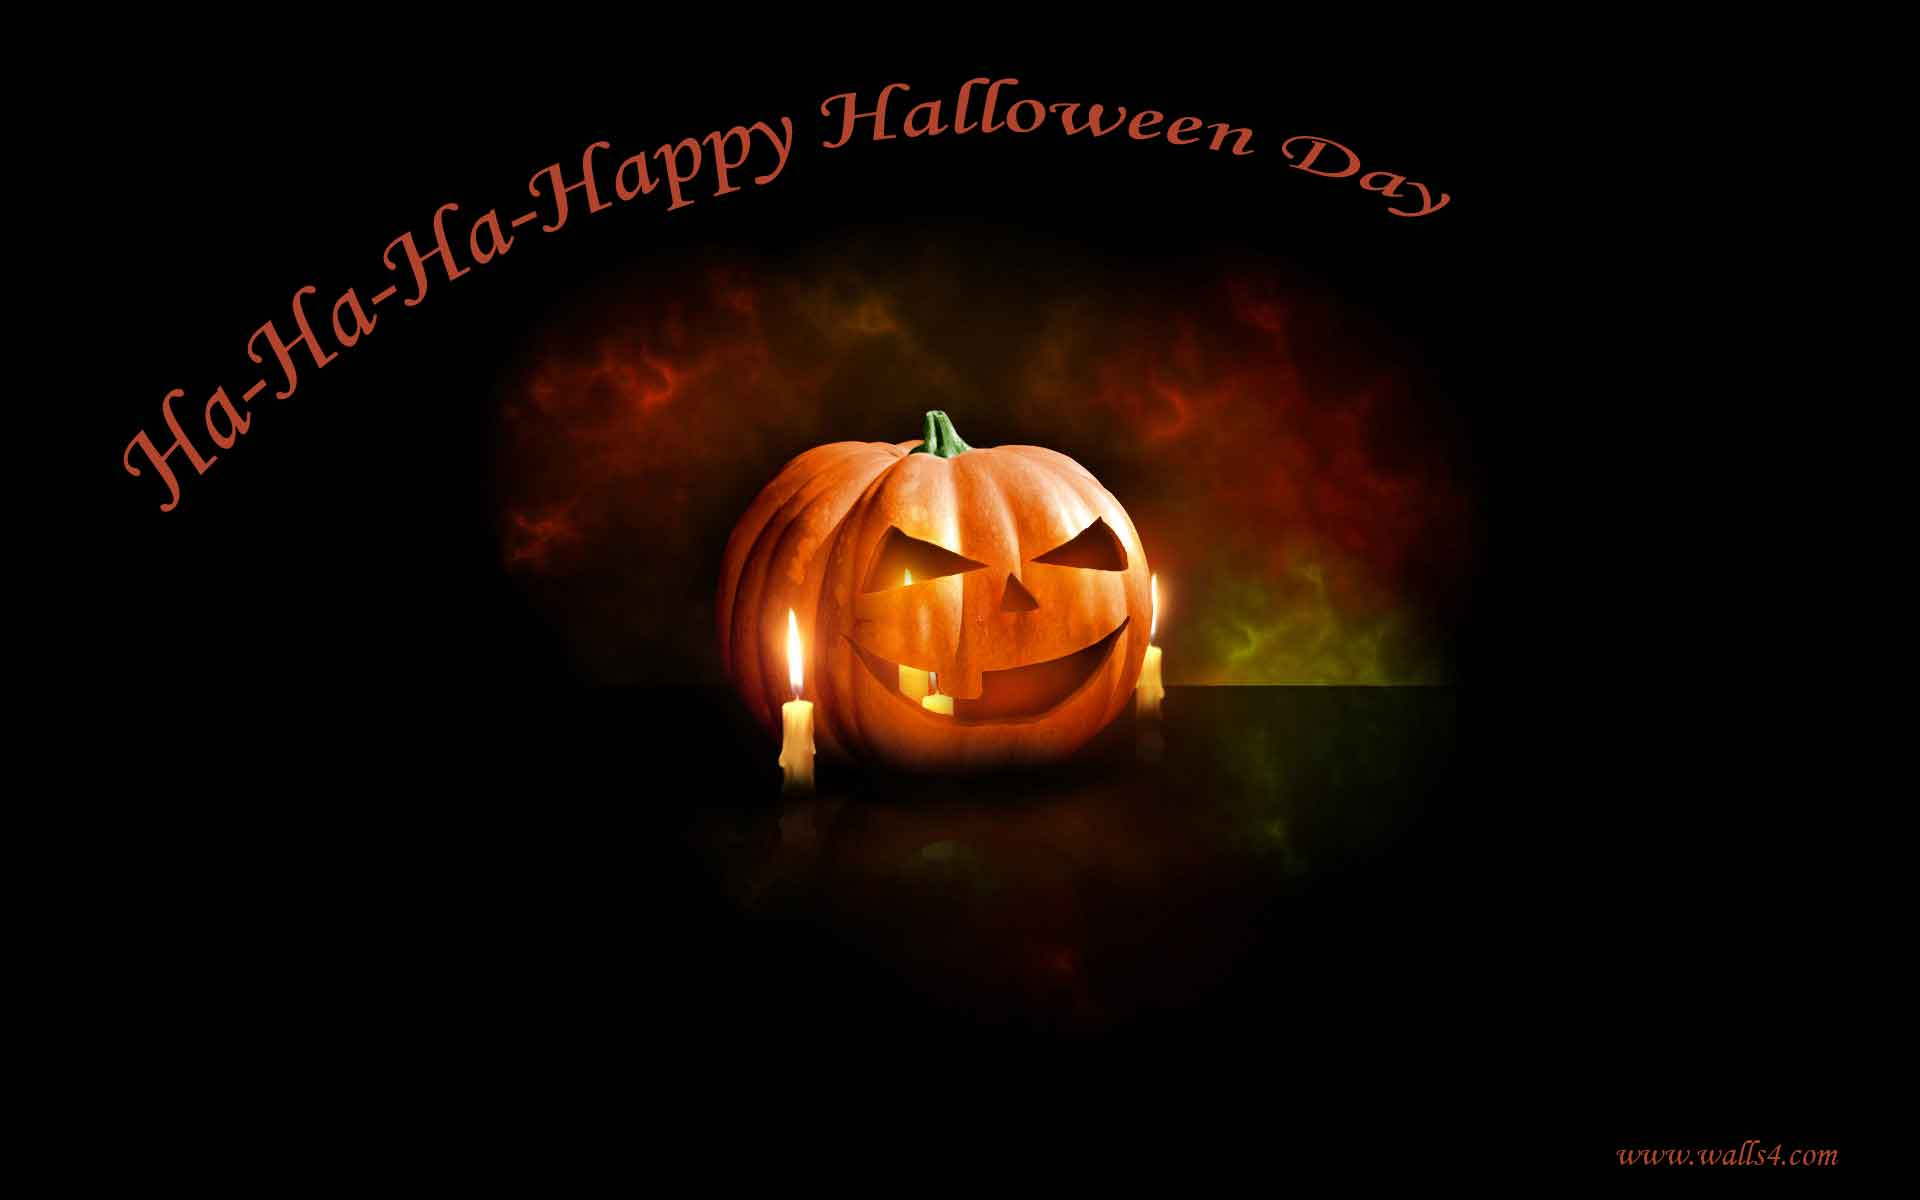 Scary happy halloween wallpapers wallpaper cave - Scary halloween pumpkin wallpaper ...